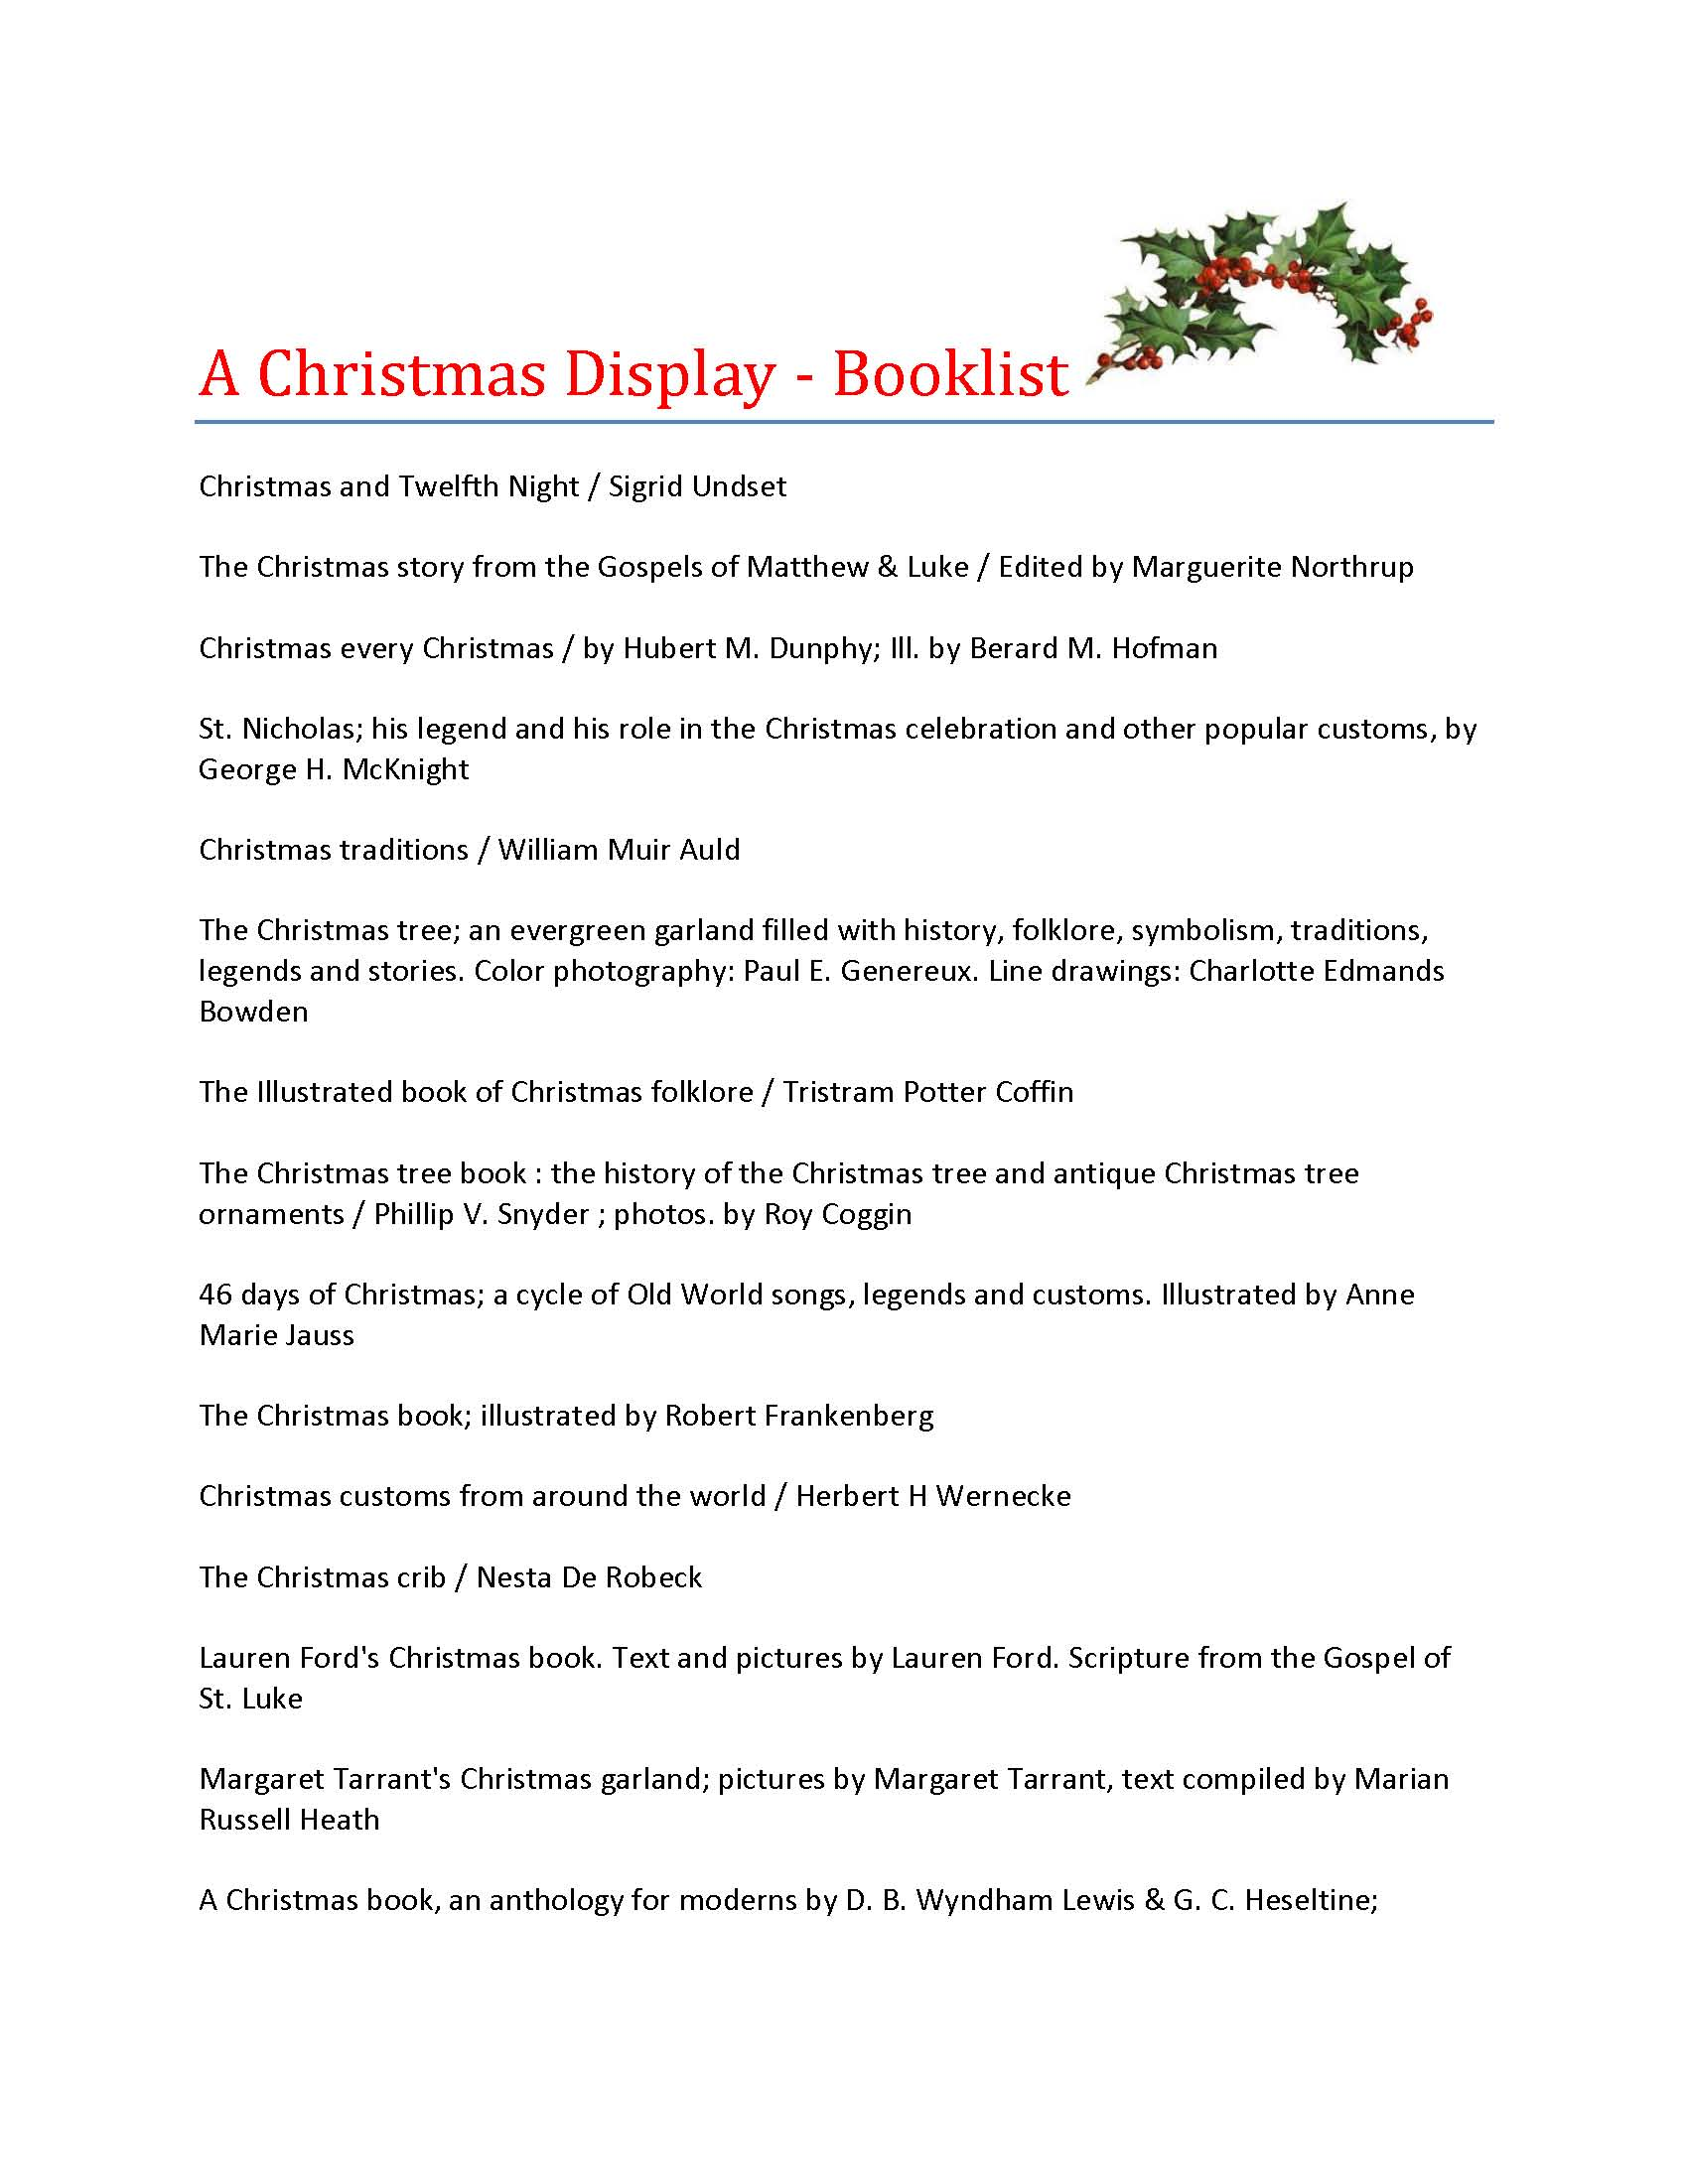 Christmas display booklist_Page_1